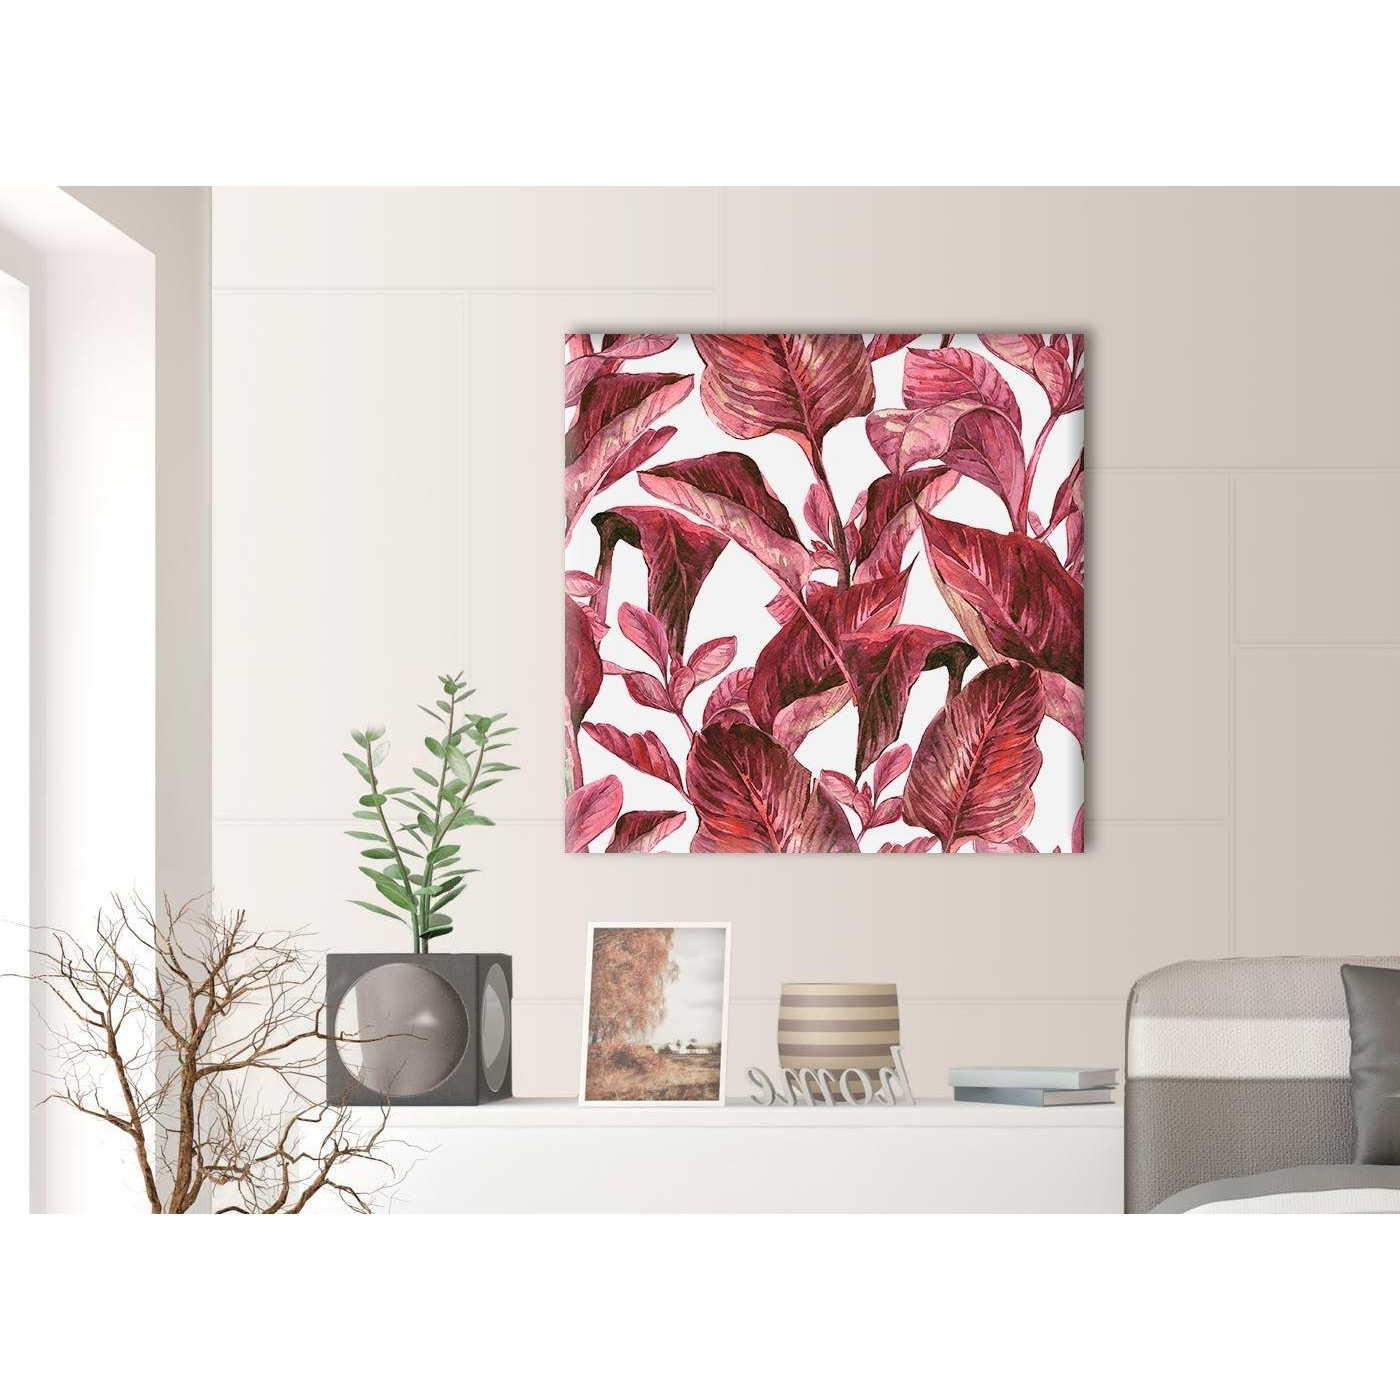 2017 Dark Burgundy Red White Tropical Leaves Canvas Wall Art – Modern With Burgundy Wall Art (View 2 of 15)